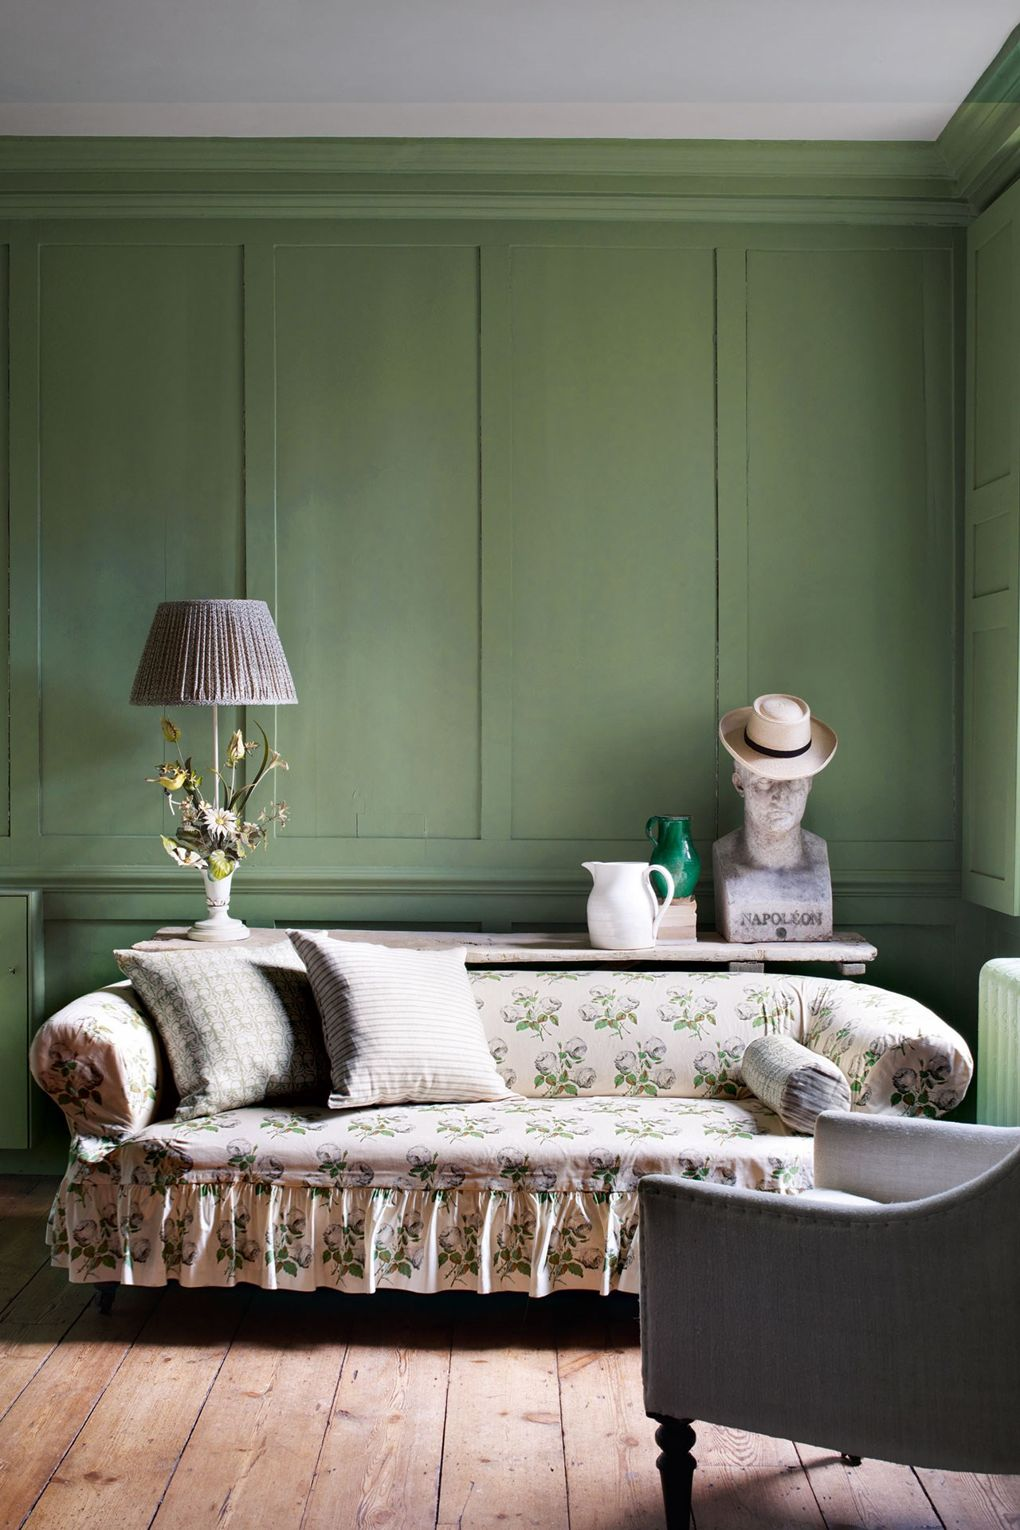 Farrow and Ball Breakfast Room Green Walls Slipcovered Sofa Ruffled Skirt Colefax and Folwer Bowood Print